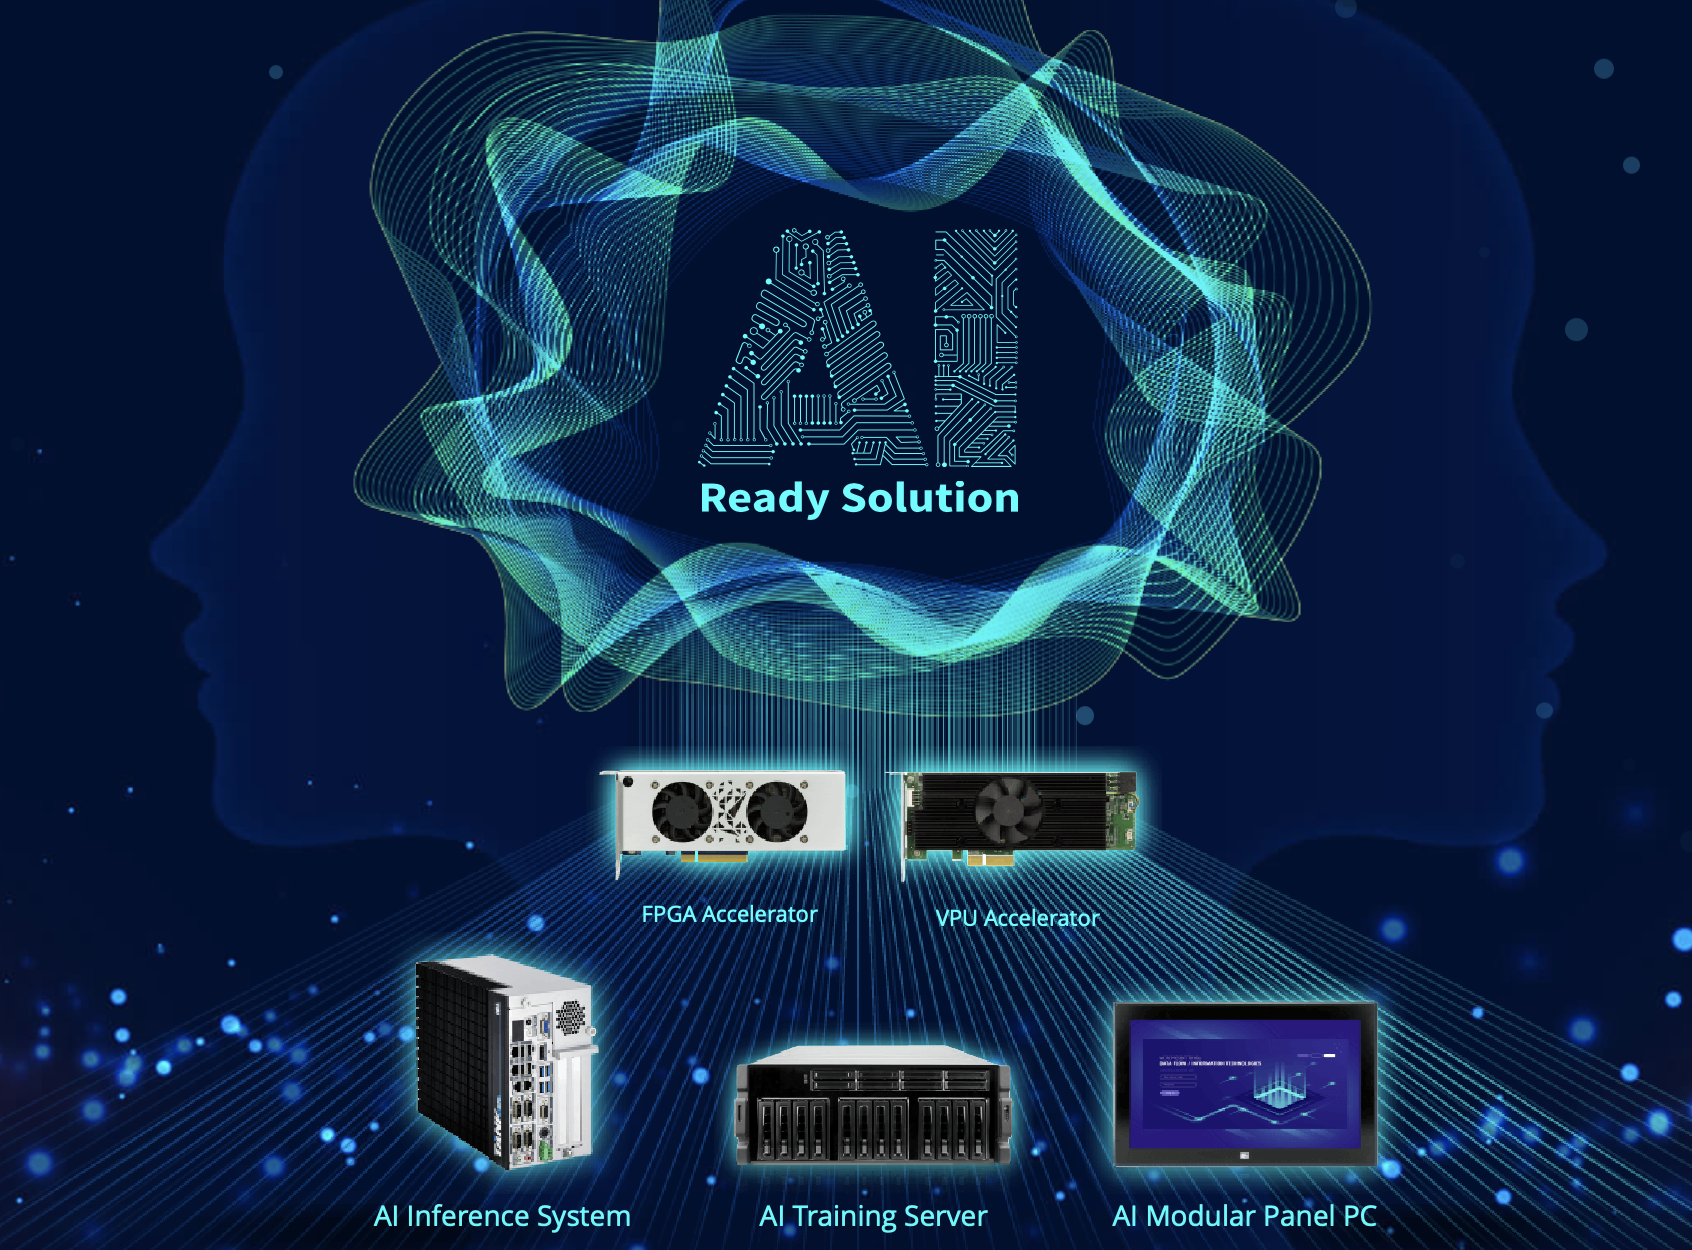 IEI: AI Ready Solution Accelerates Your AI Initiative